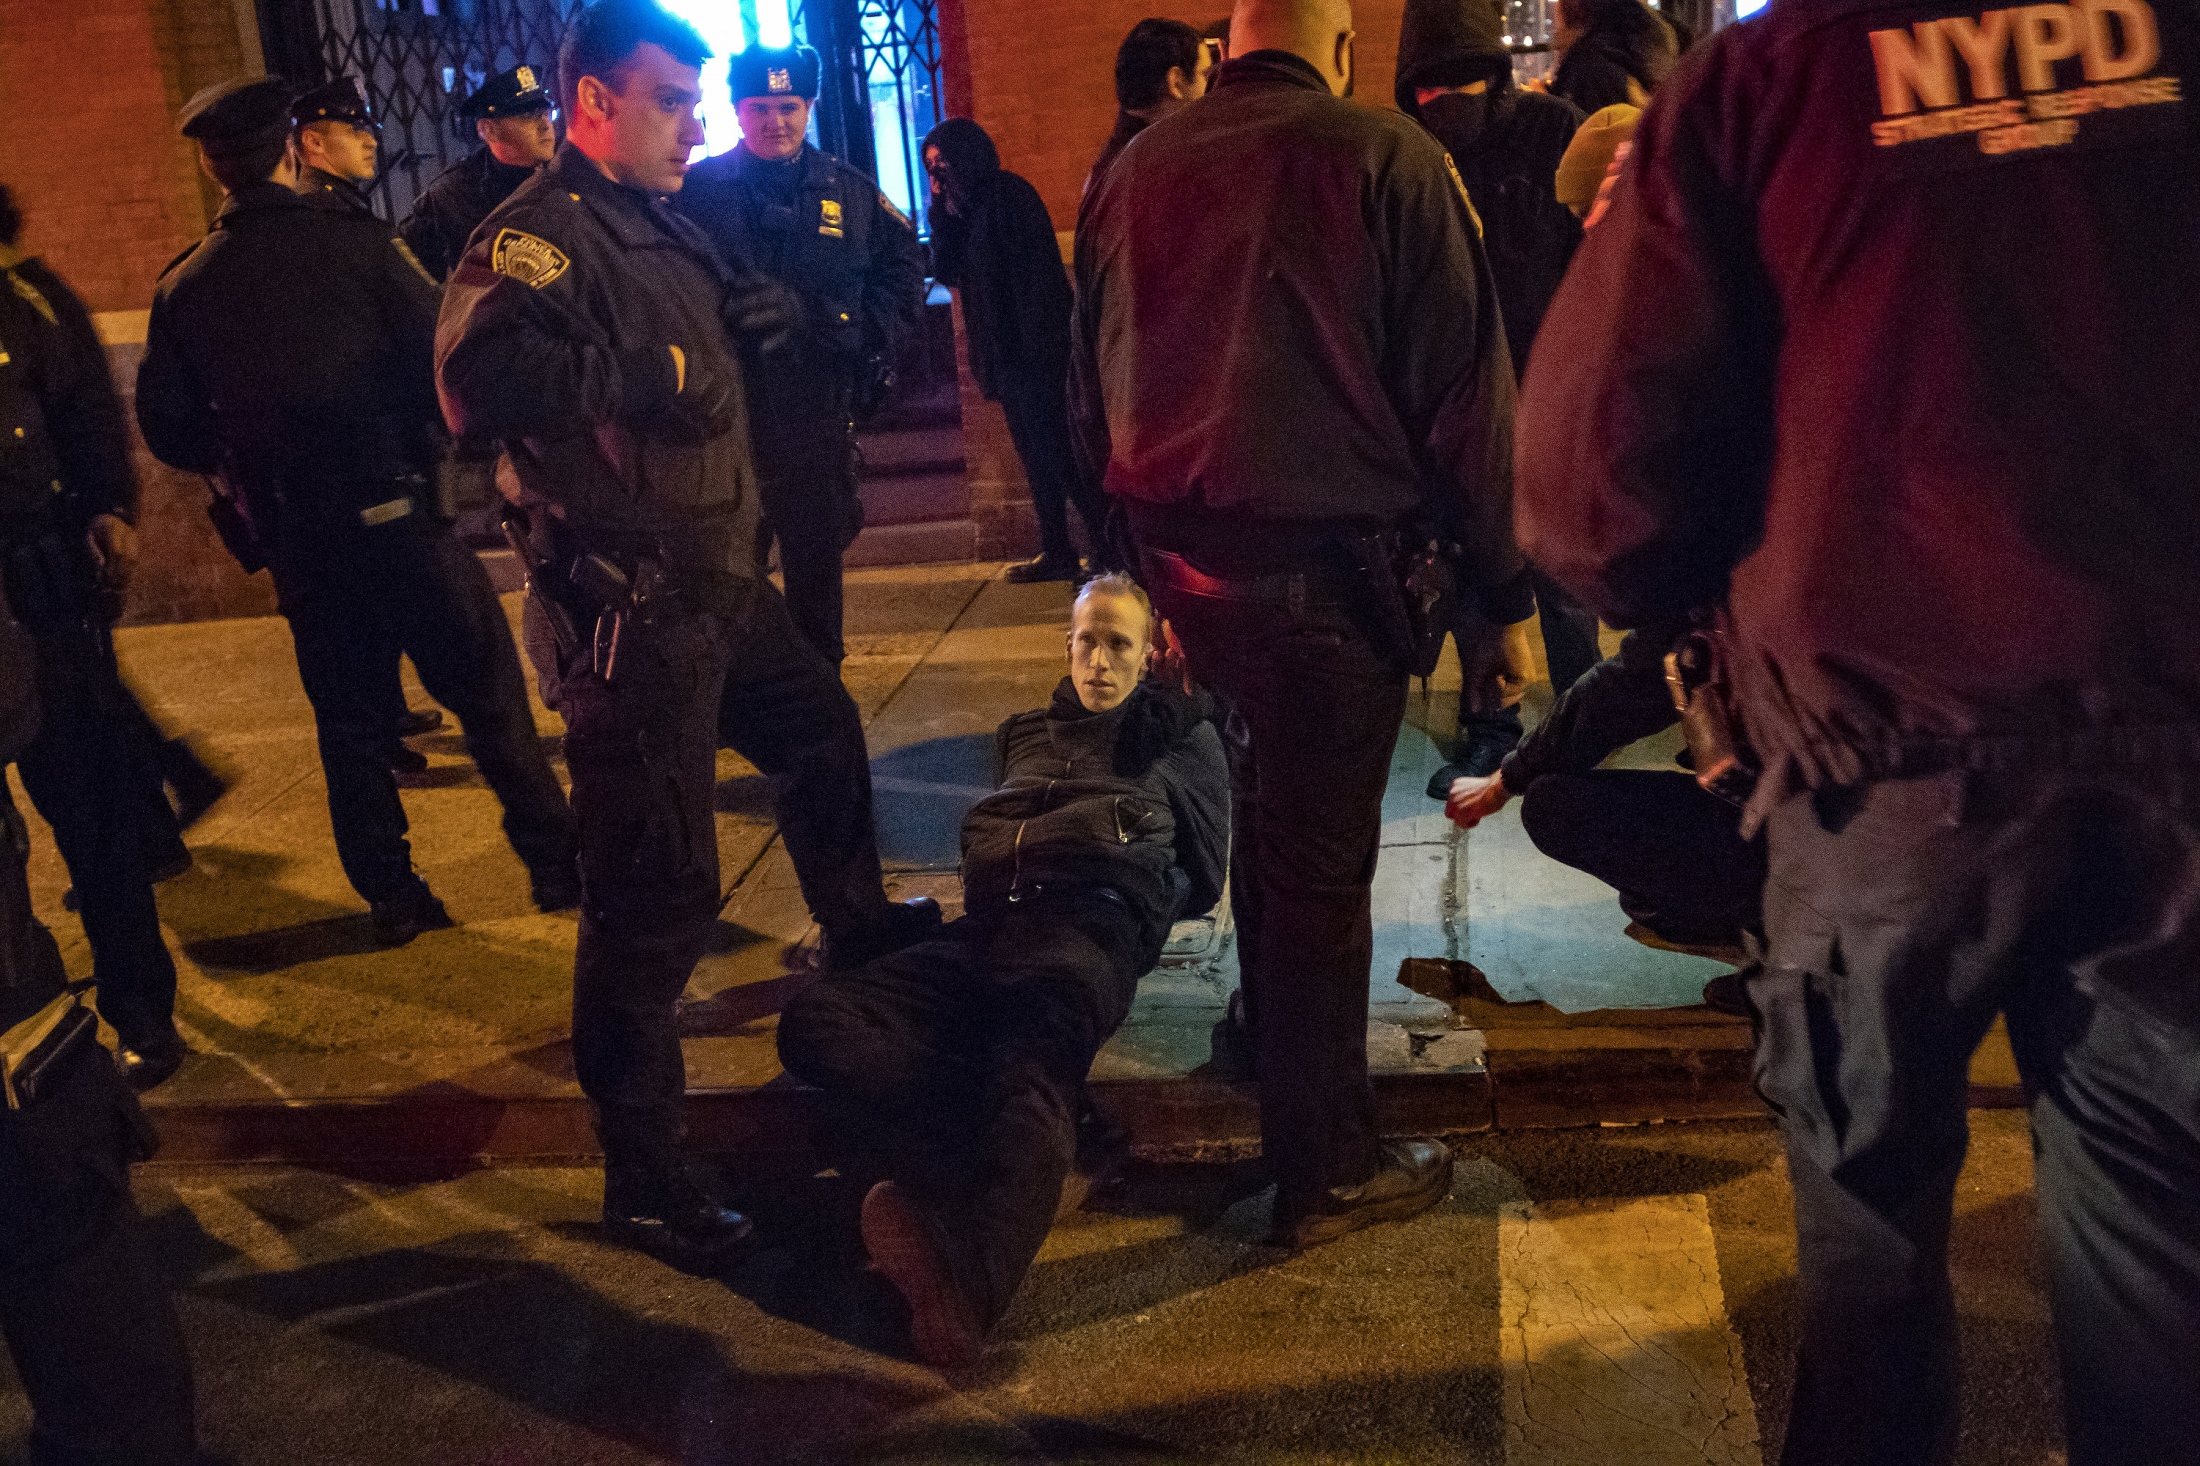 Art and Documentary Photography - Loading Kevin_C._Downs_ALTRIGHT-PARTYGOER-ATTACK_DOWNS_69095.JPG